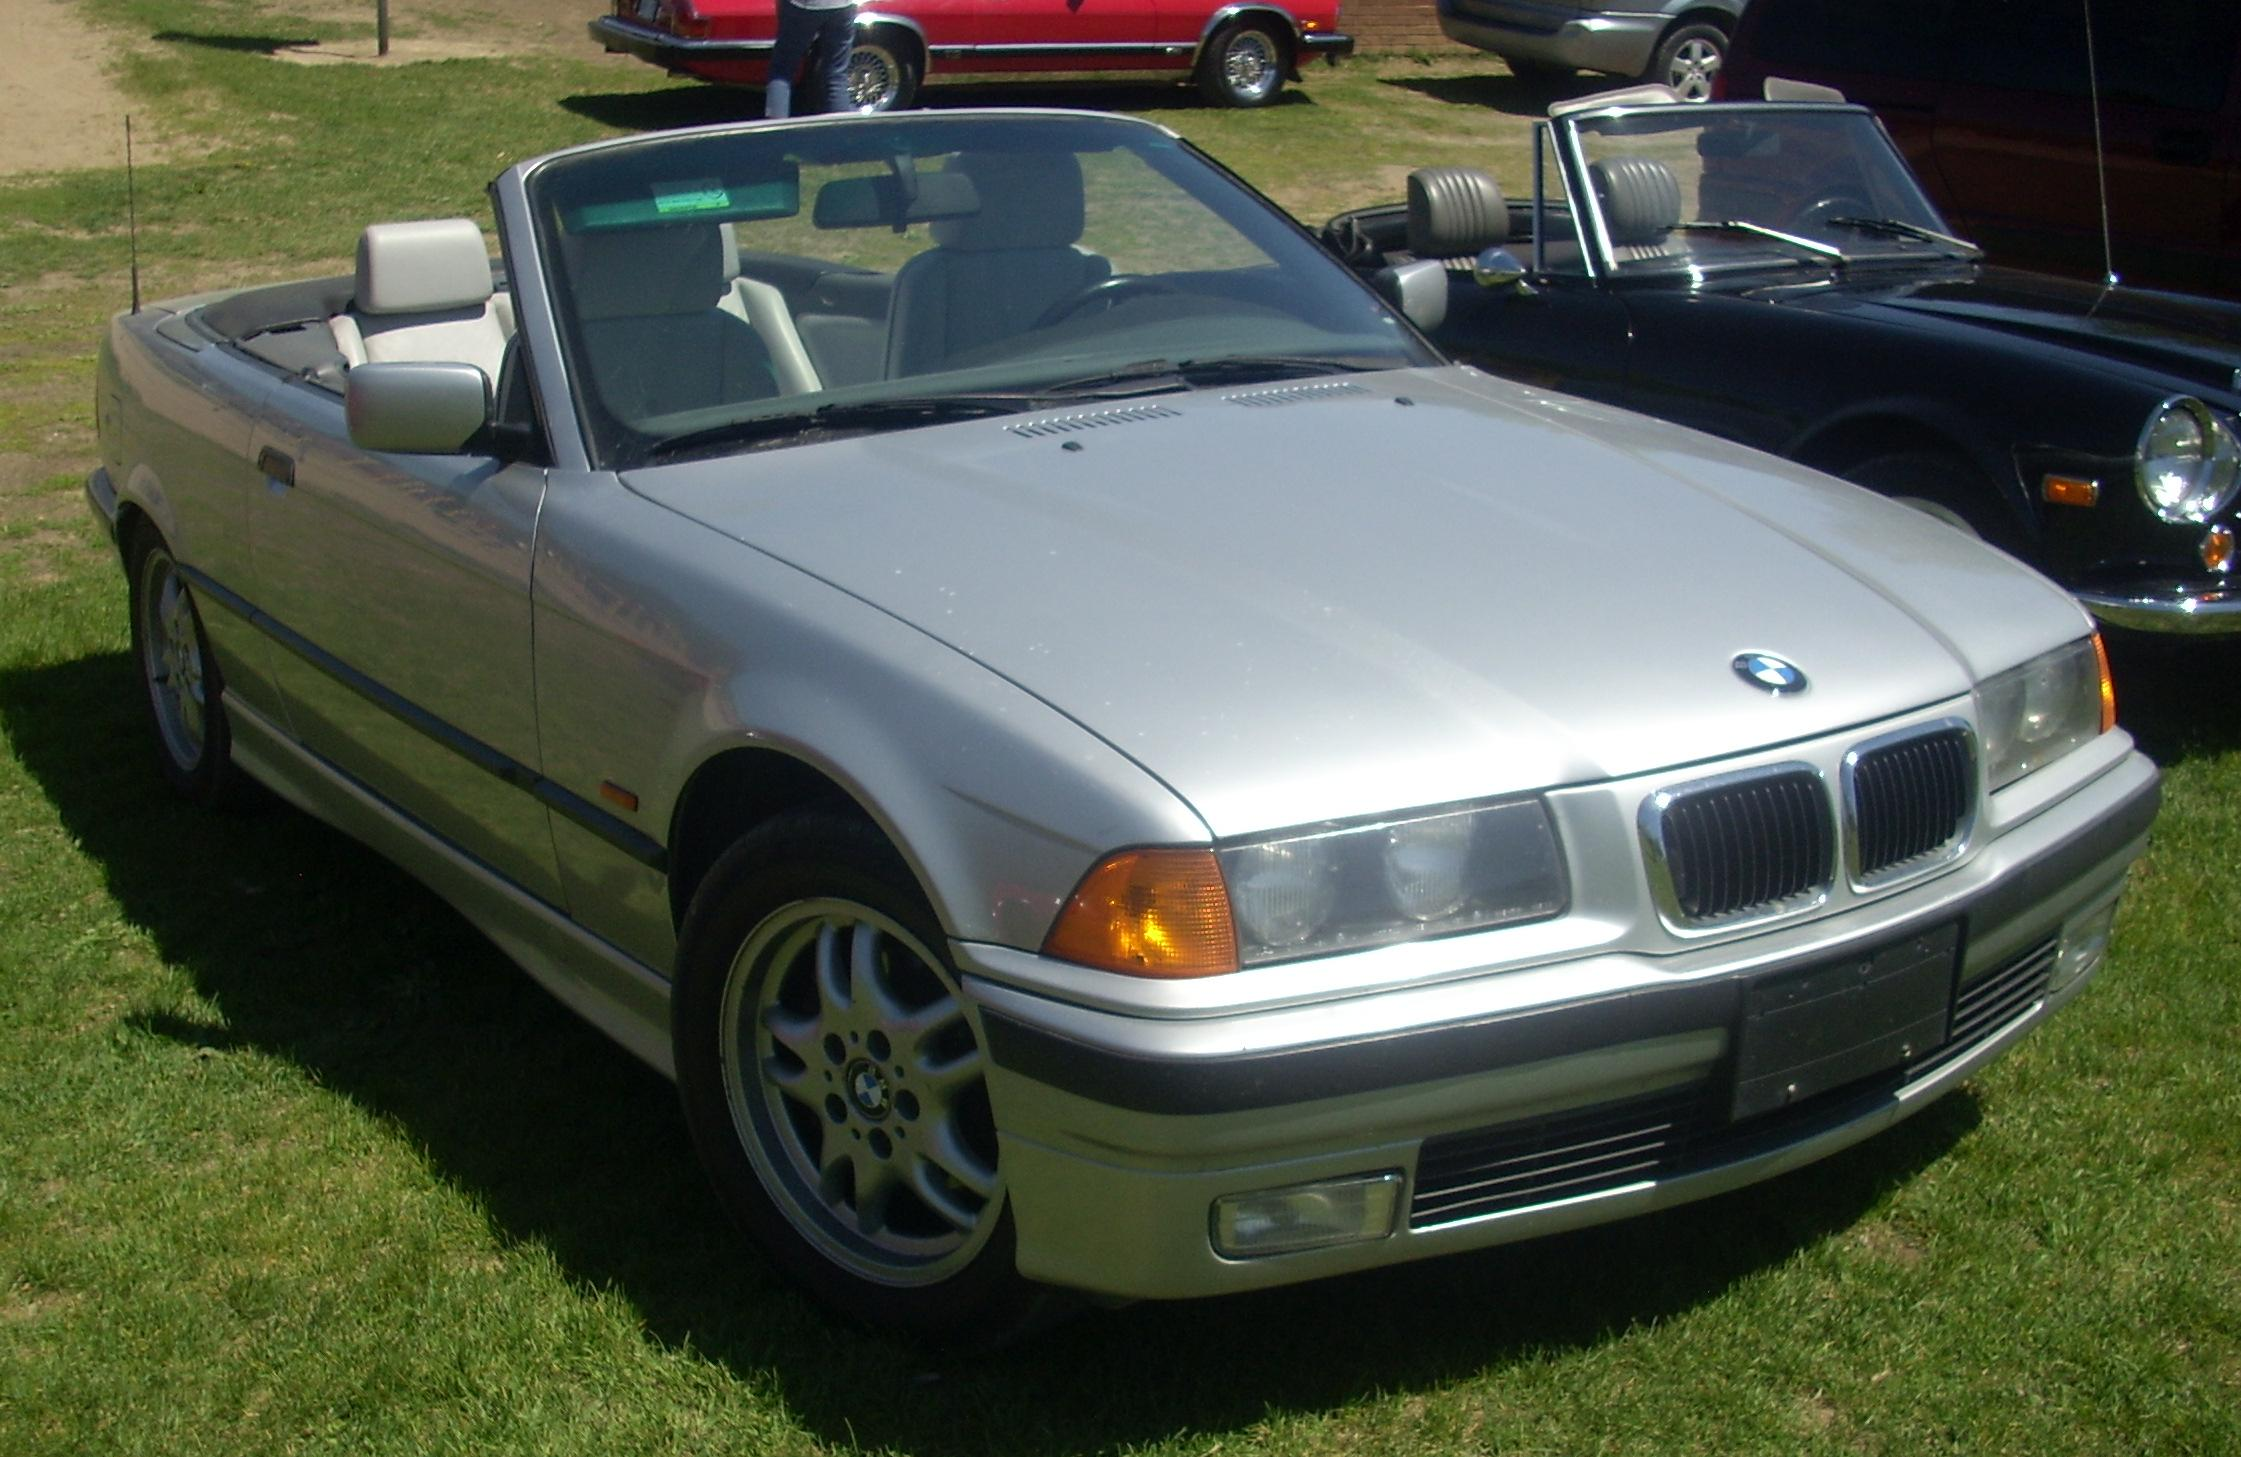 file 39 97 39 99 bmw 323i convertible e36 hudson jpg wikimedia commons. Black Bedroom Furniture Sets. Home Design Ideas